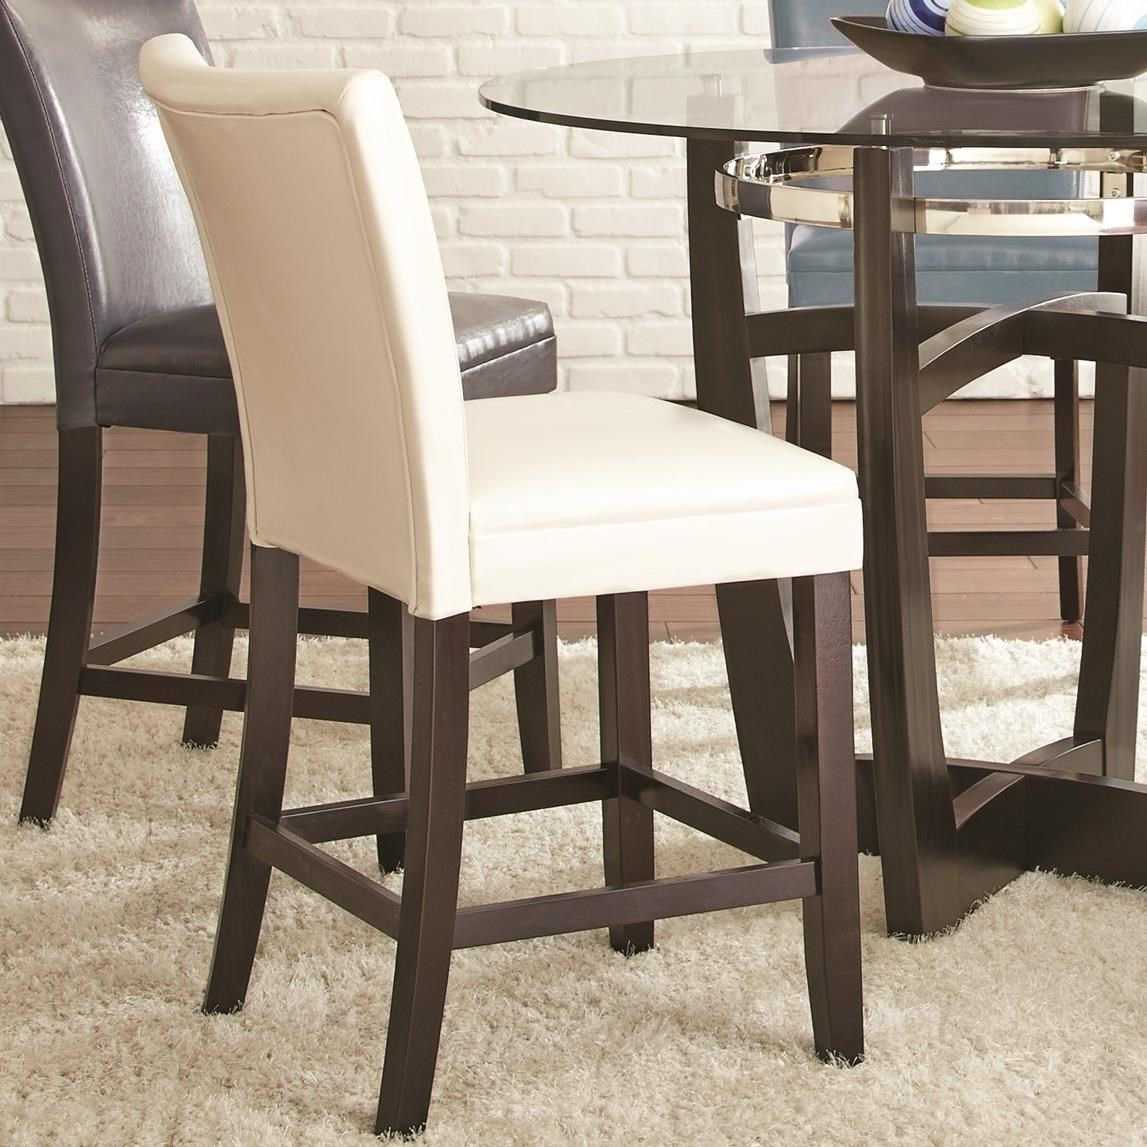 Steve Silver Matinee Bonded Leather Counter Height Chair  : products2Fstevesilver2Fcolor2Fmaniteemt480ccw b1jpgscalebothampwidth500ampheight500ampfsharpen25ampdown from www.walkersfurniture.com size 500 x 500 jpeg 66kB